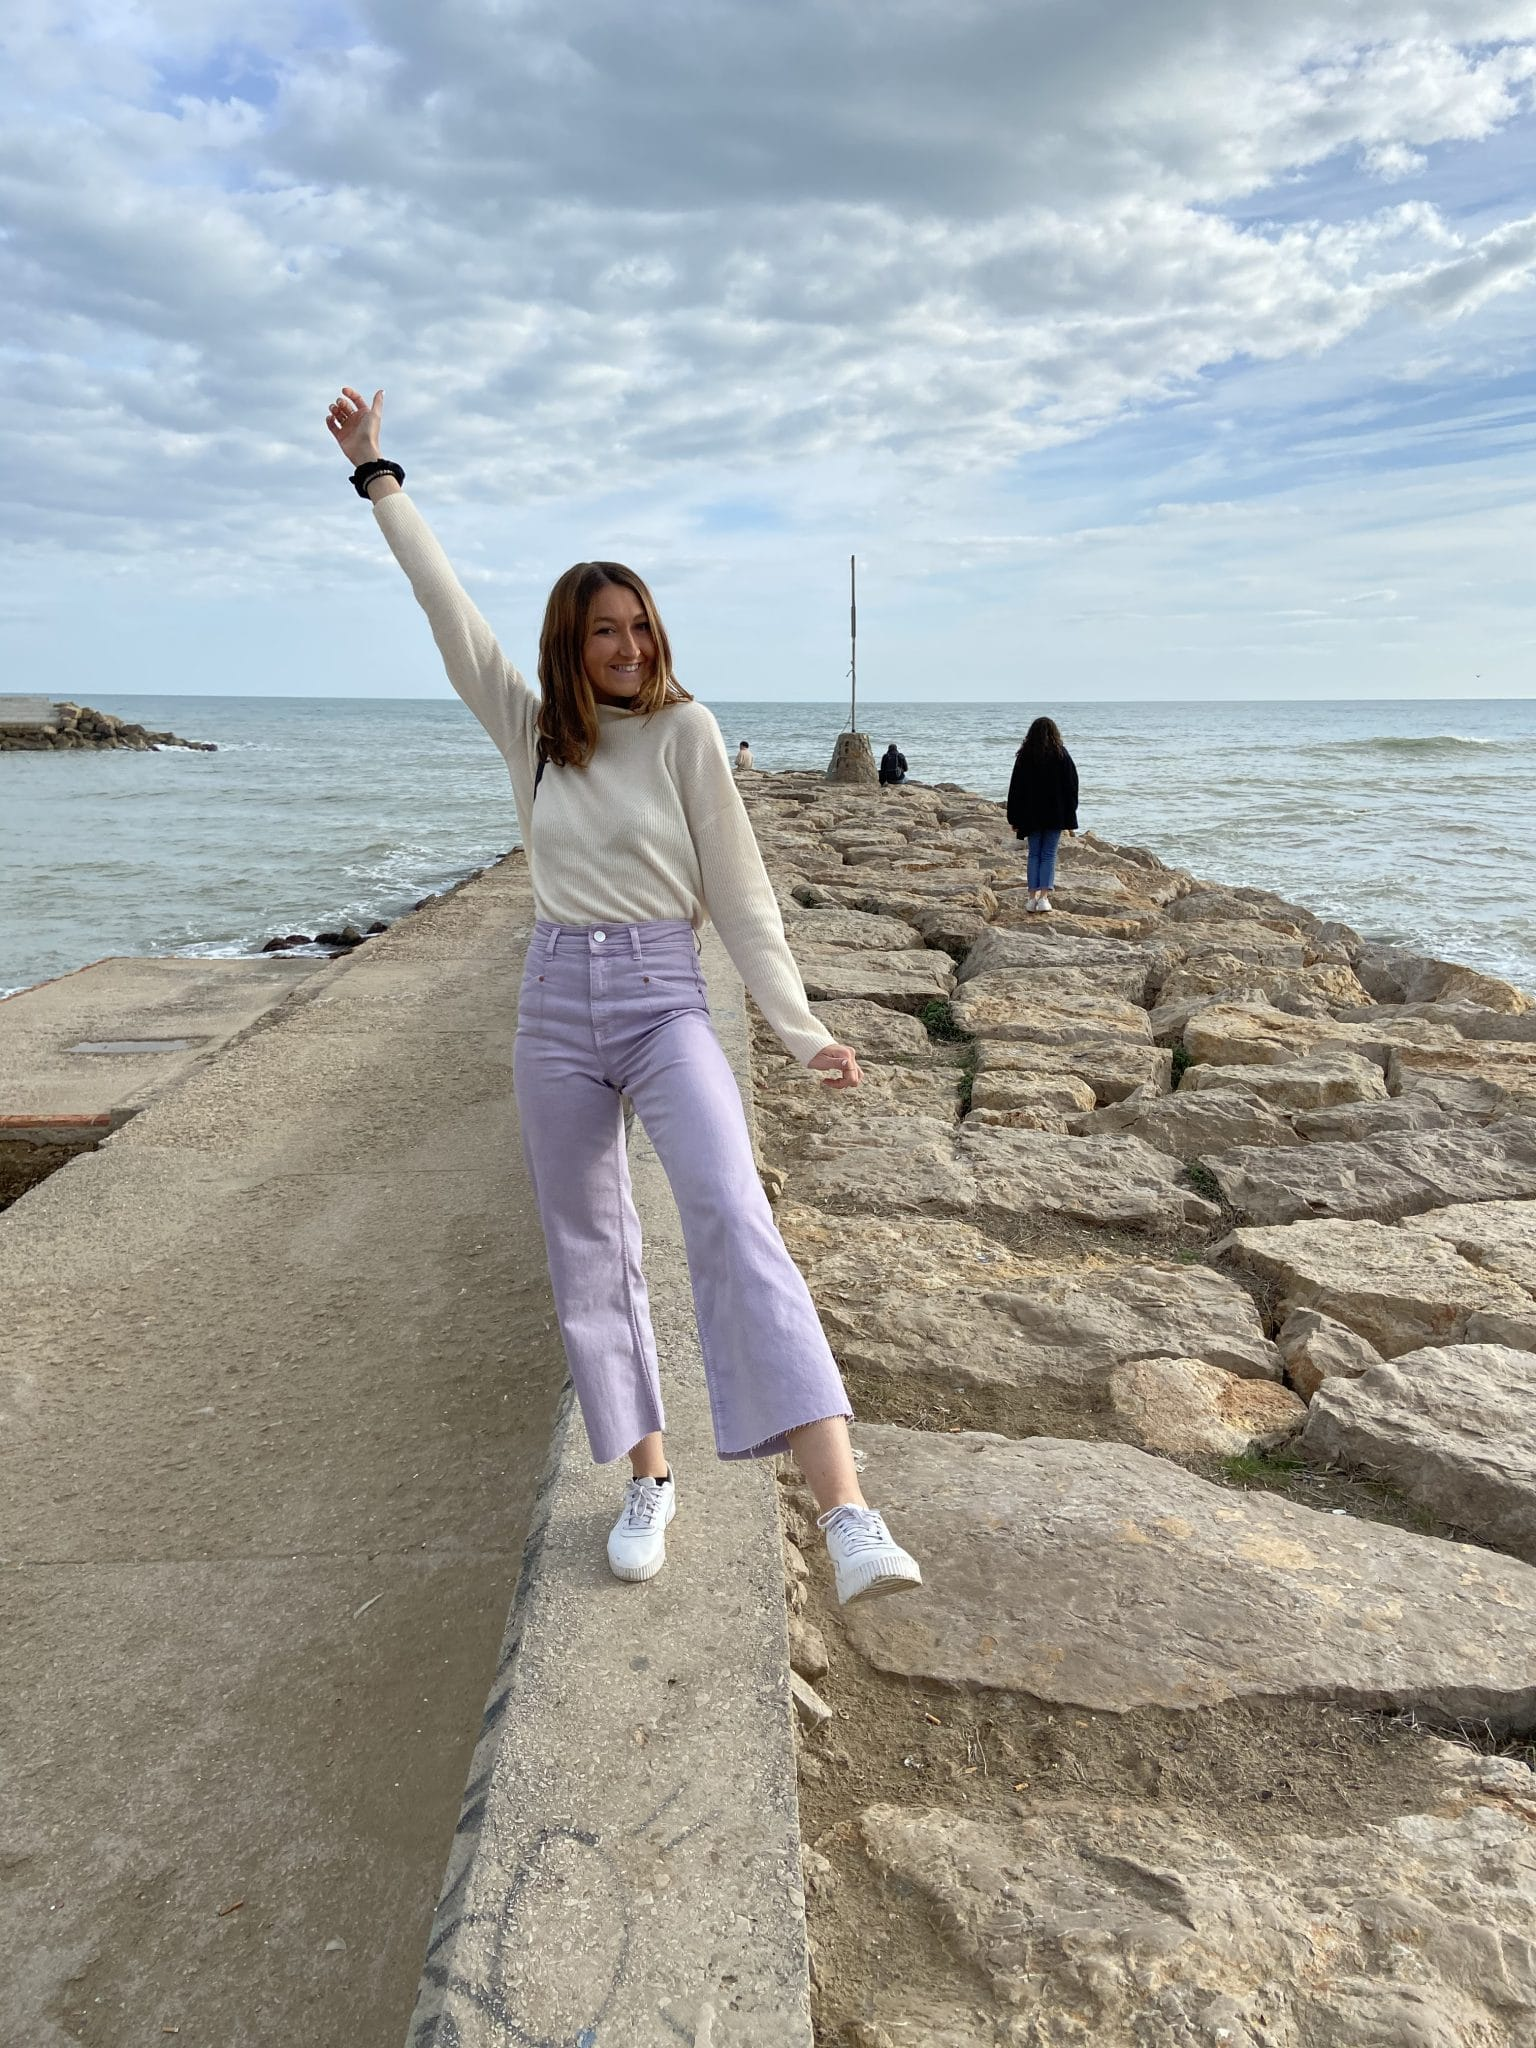 Julia Yanowitz poses for a photo on a jetty.